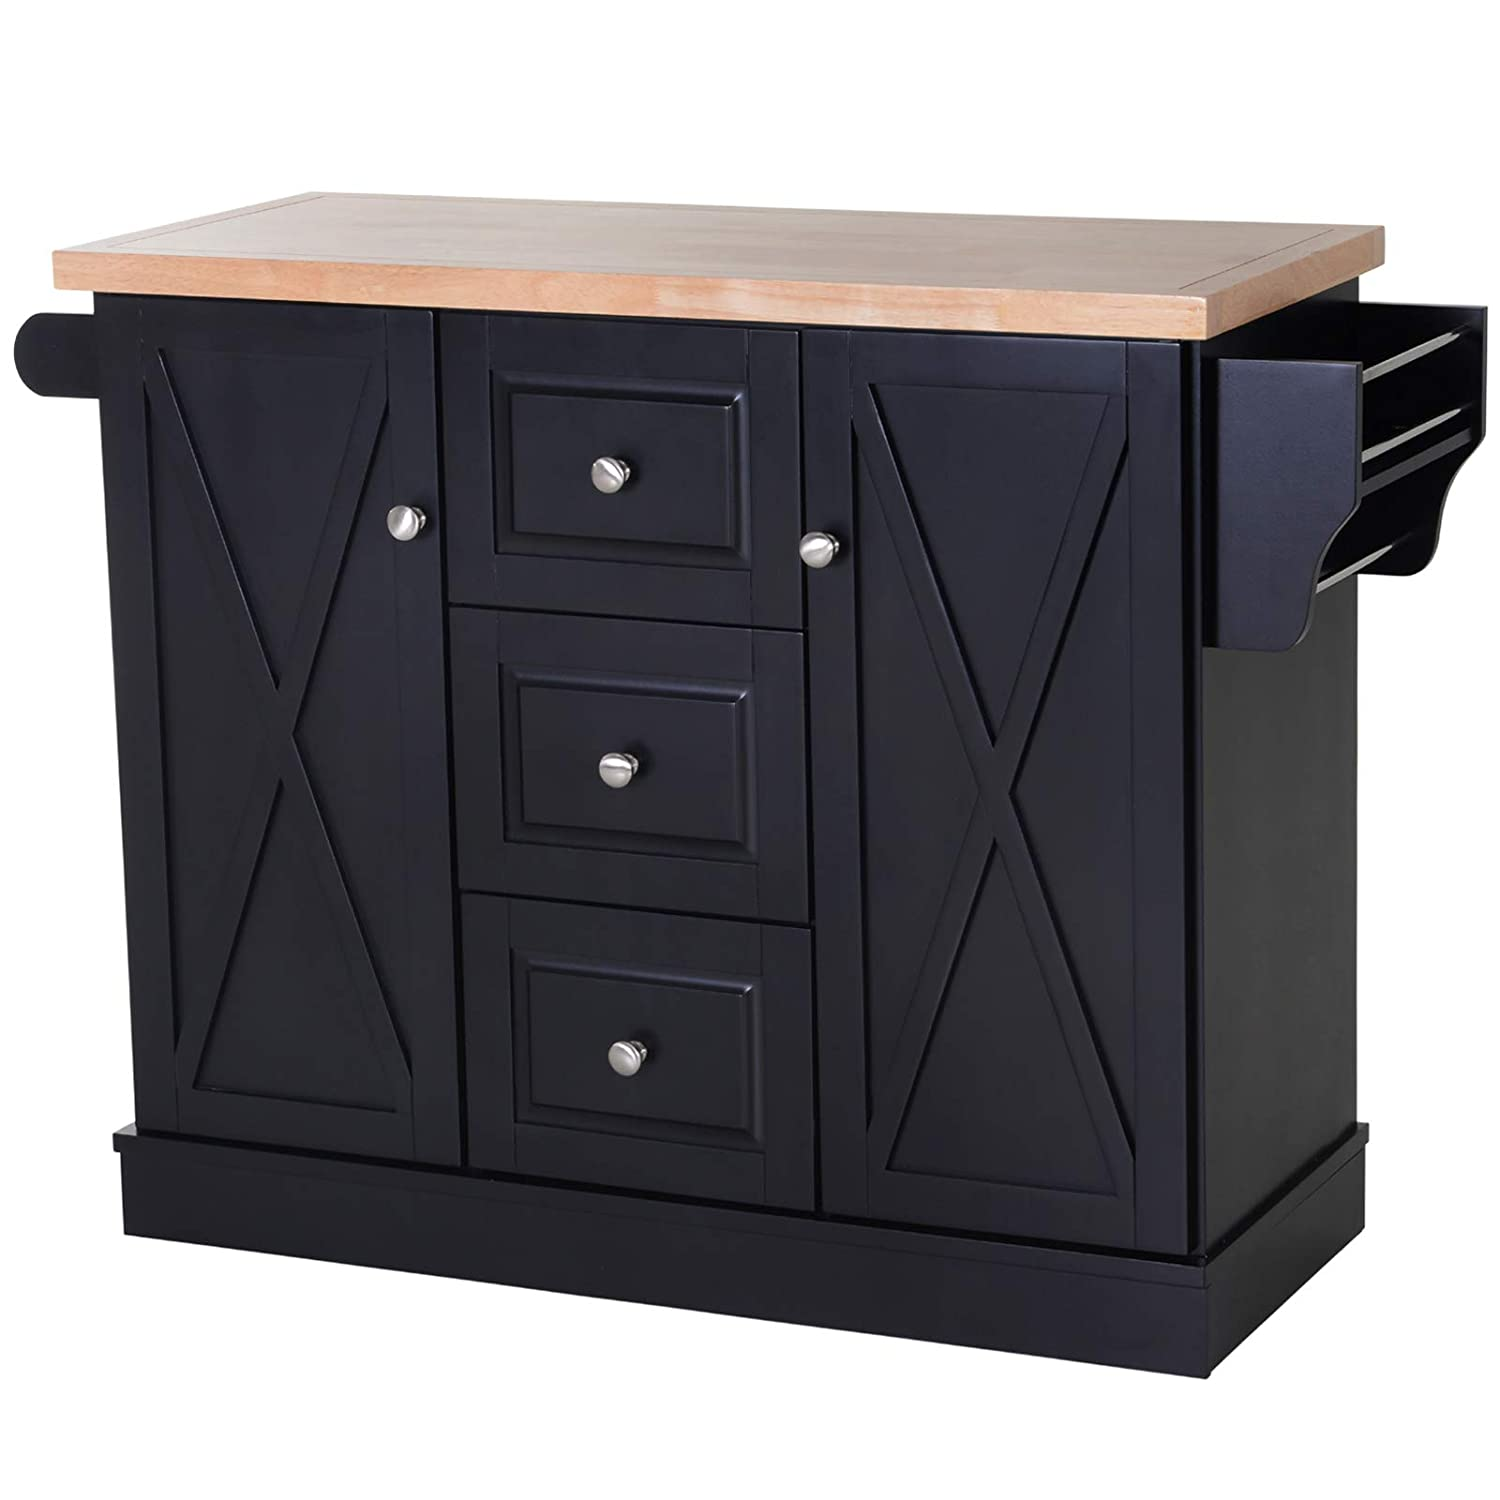 HOMCOM Wooden Mobile Kitchen Island Cart with Drawers and Wheel- Black